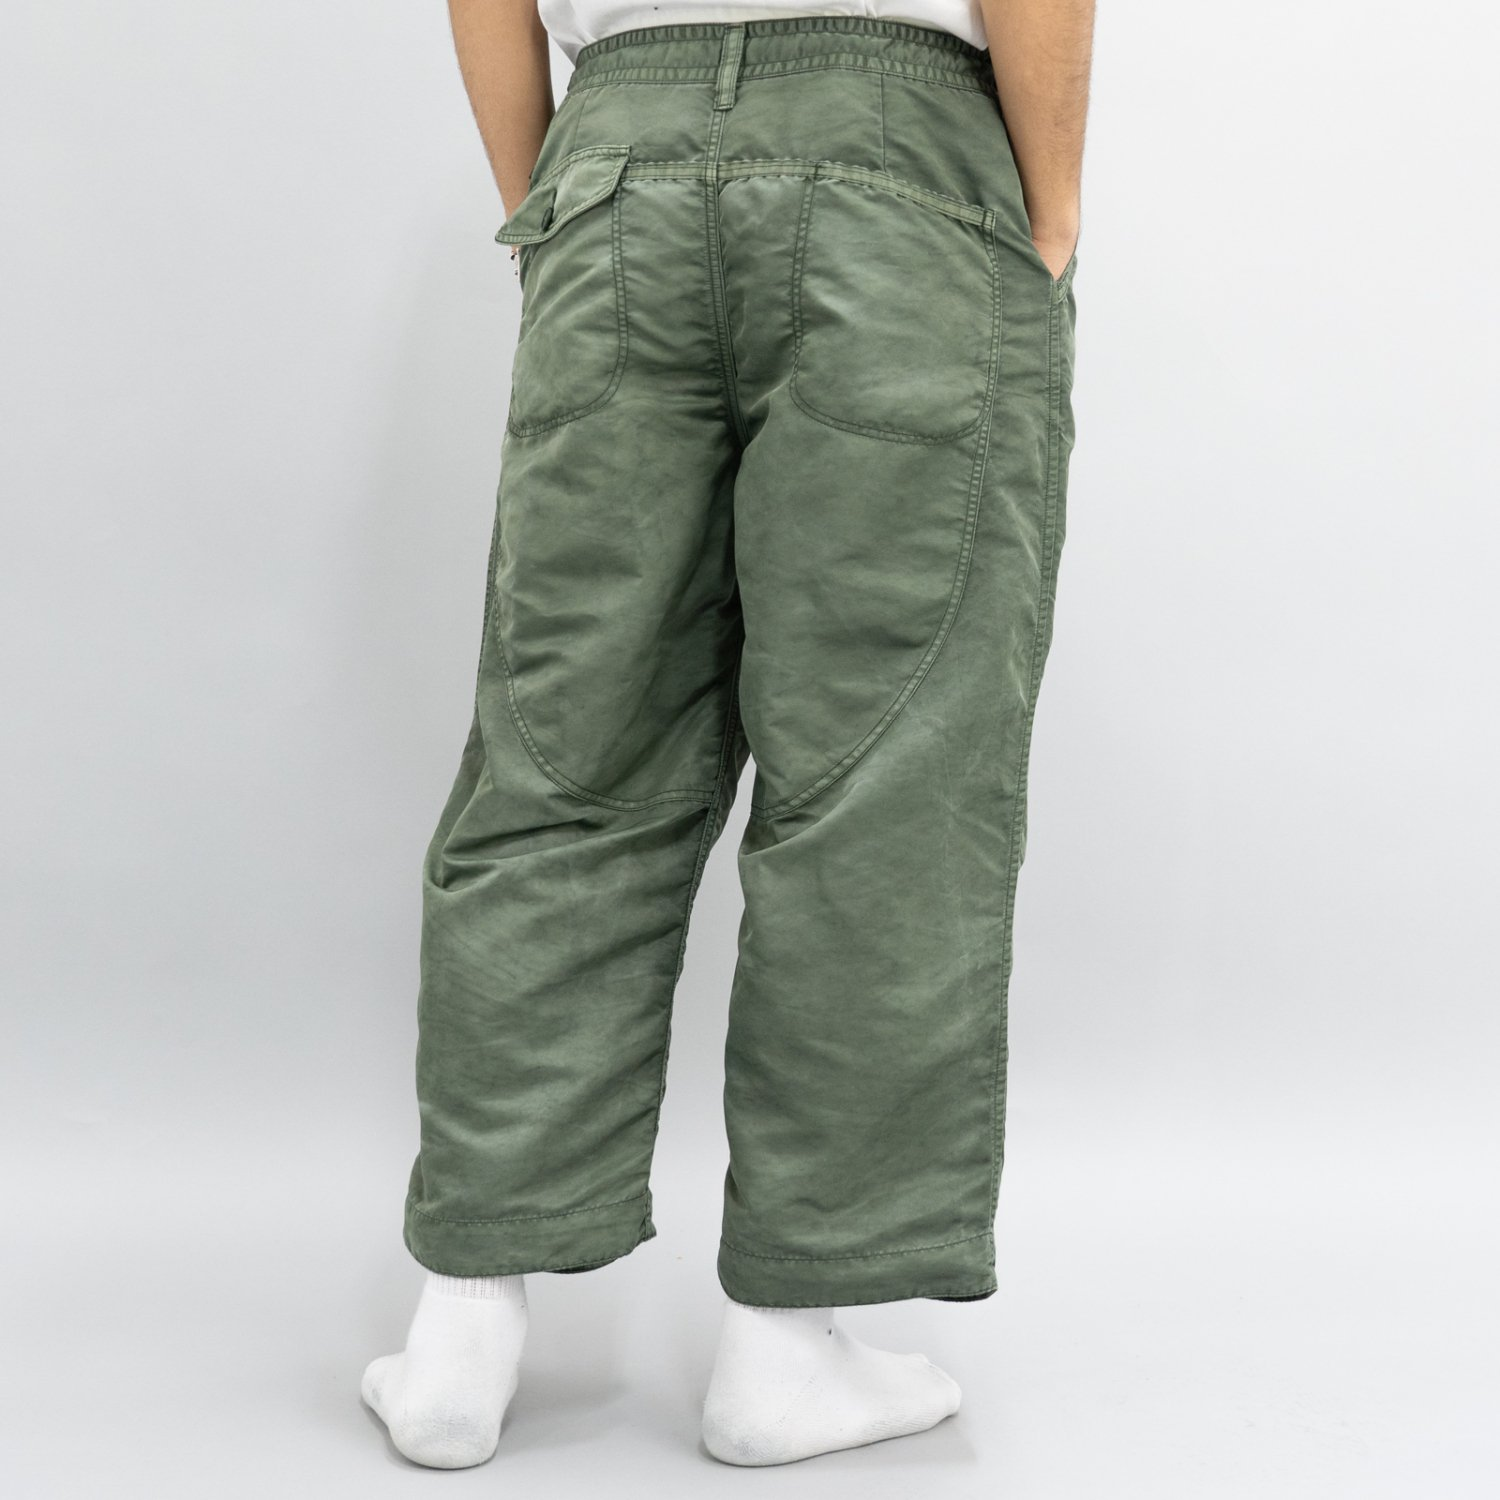 Porter Classic * SUPER NYLON MASH WIDE PANTS * Olive